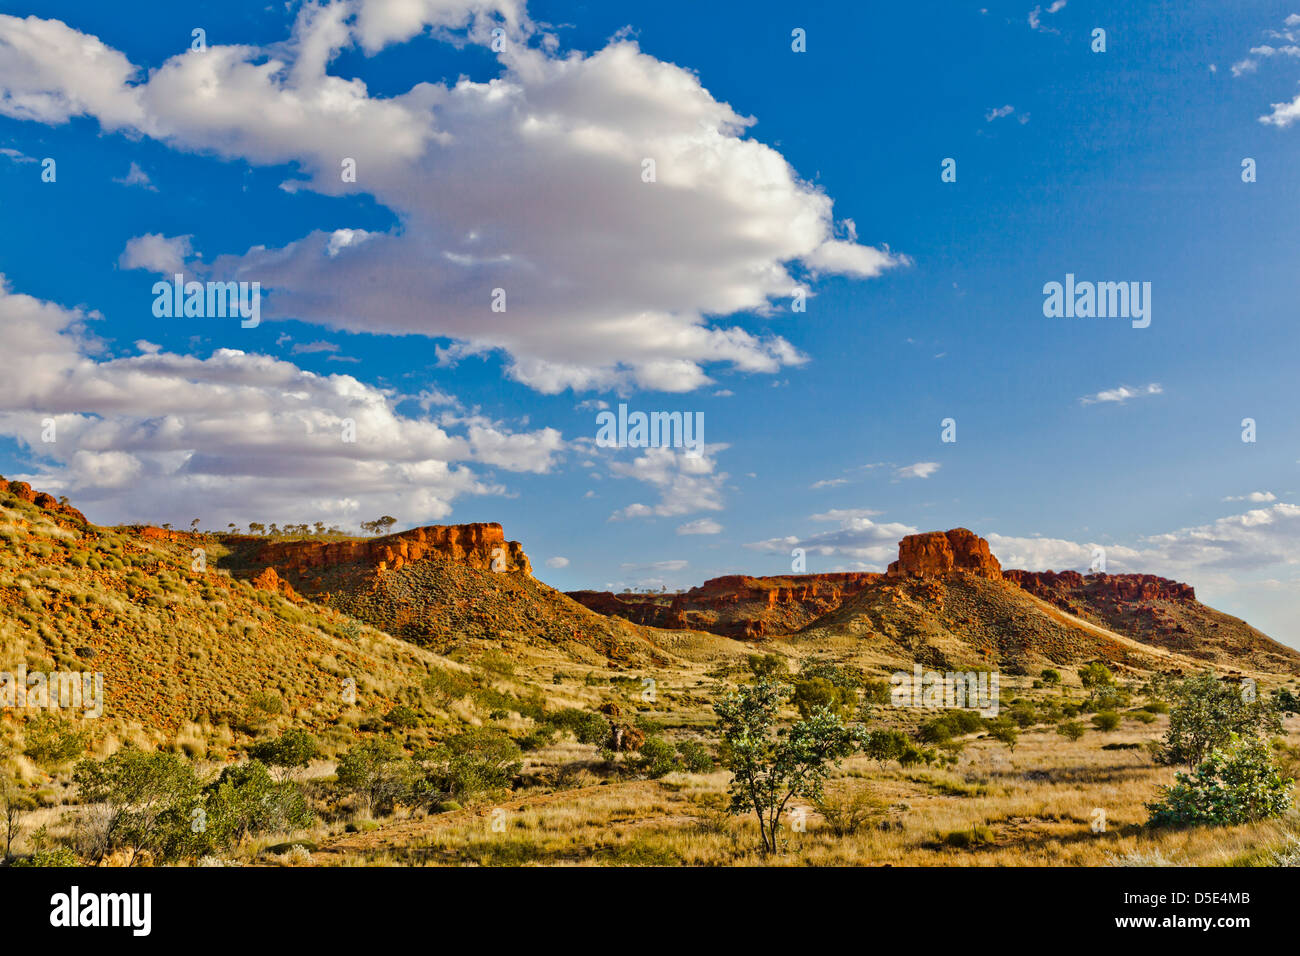 L'Australie, Australie occidentale, Kimberley, Great Northern Highway près de Fitzroy Crossing Photo Stock